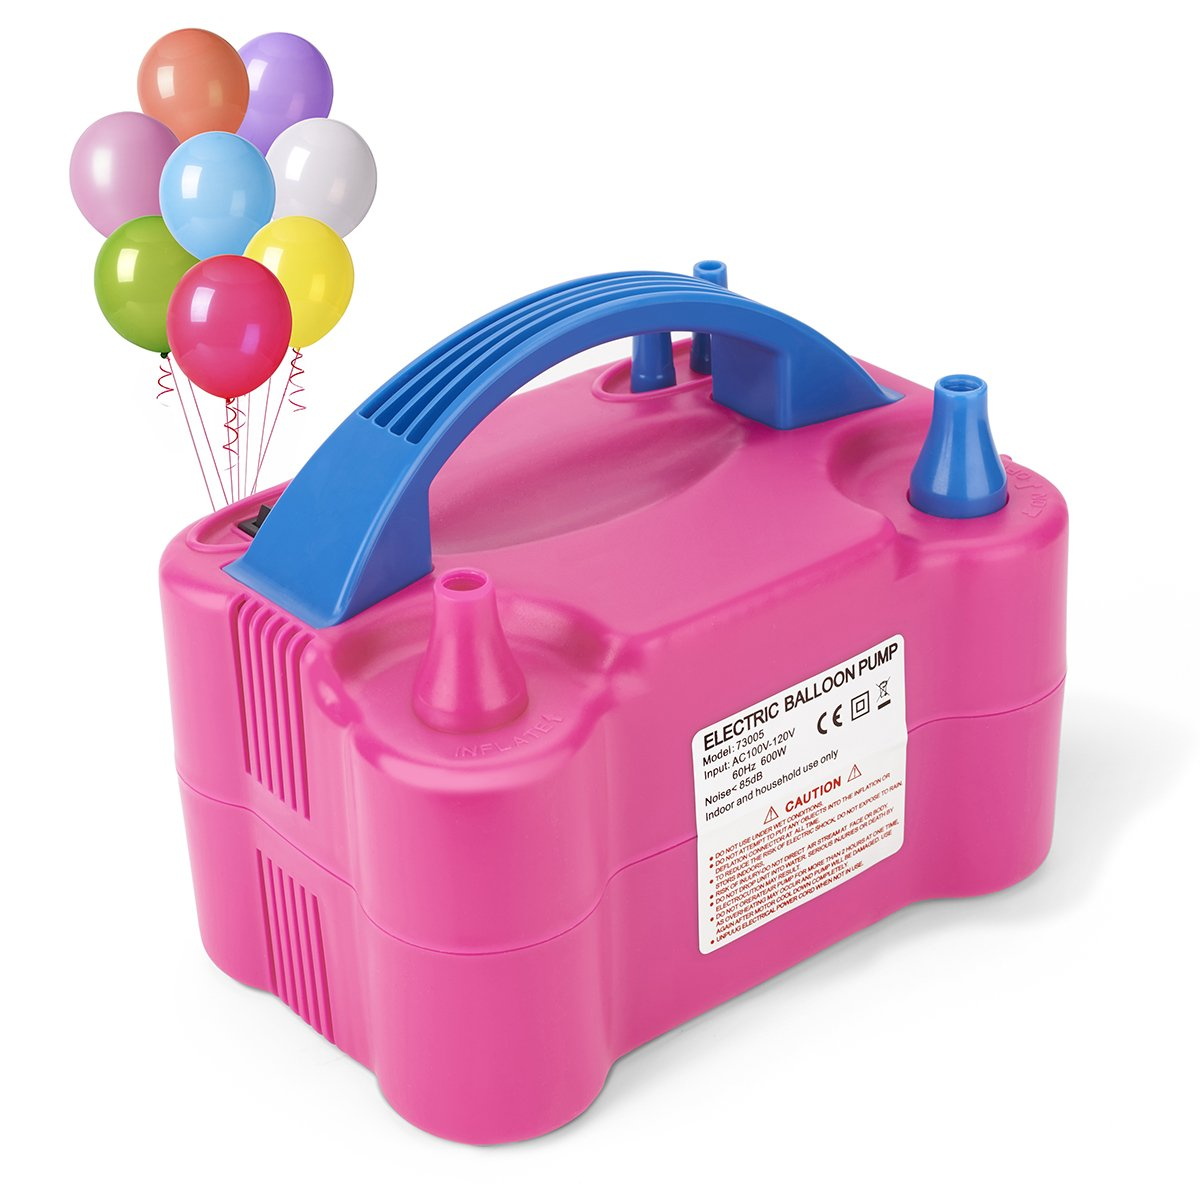 MESHA Electric Balloon Pump Portable Latex Balloon Inflator with Manual and Automatic Modes, Air Pump for Balloons